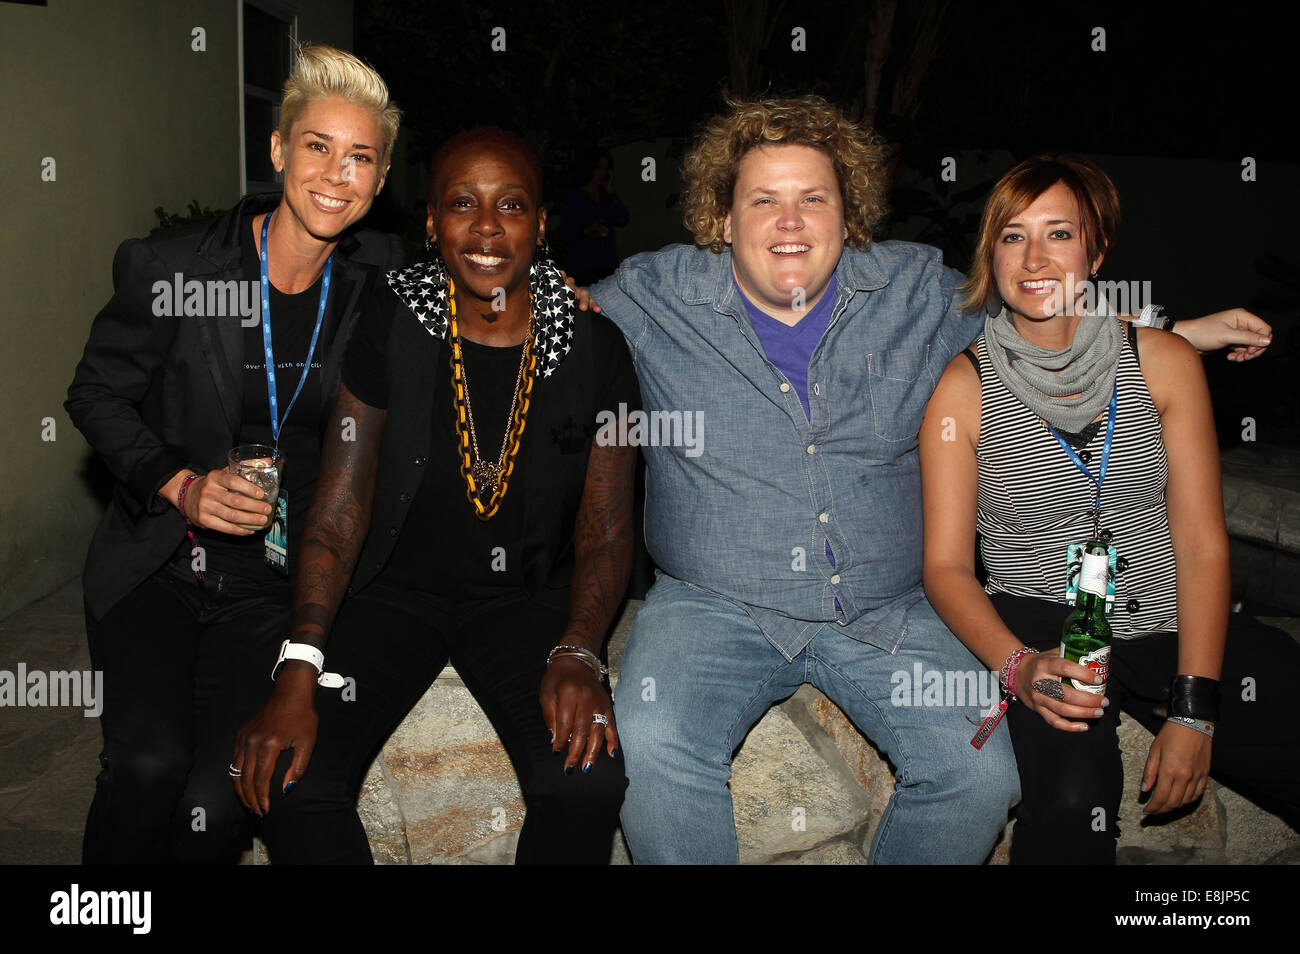 Gina Yashere High Resolution Stock Photography And Images Alamy